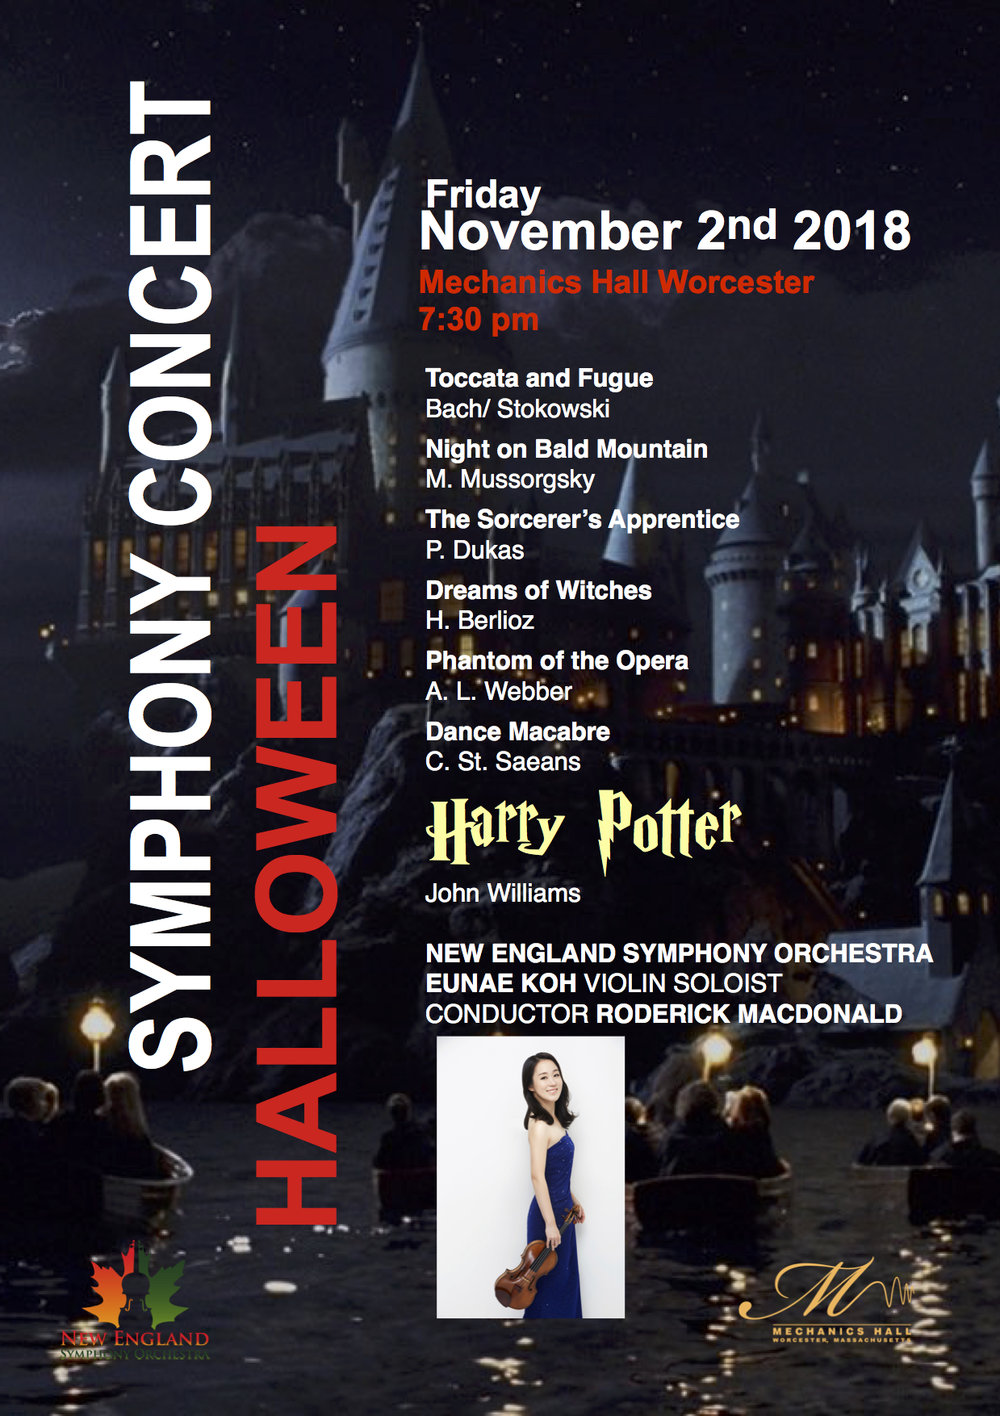 halloween concert worcester new england symphony orchestra new